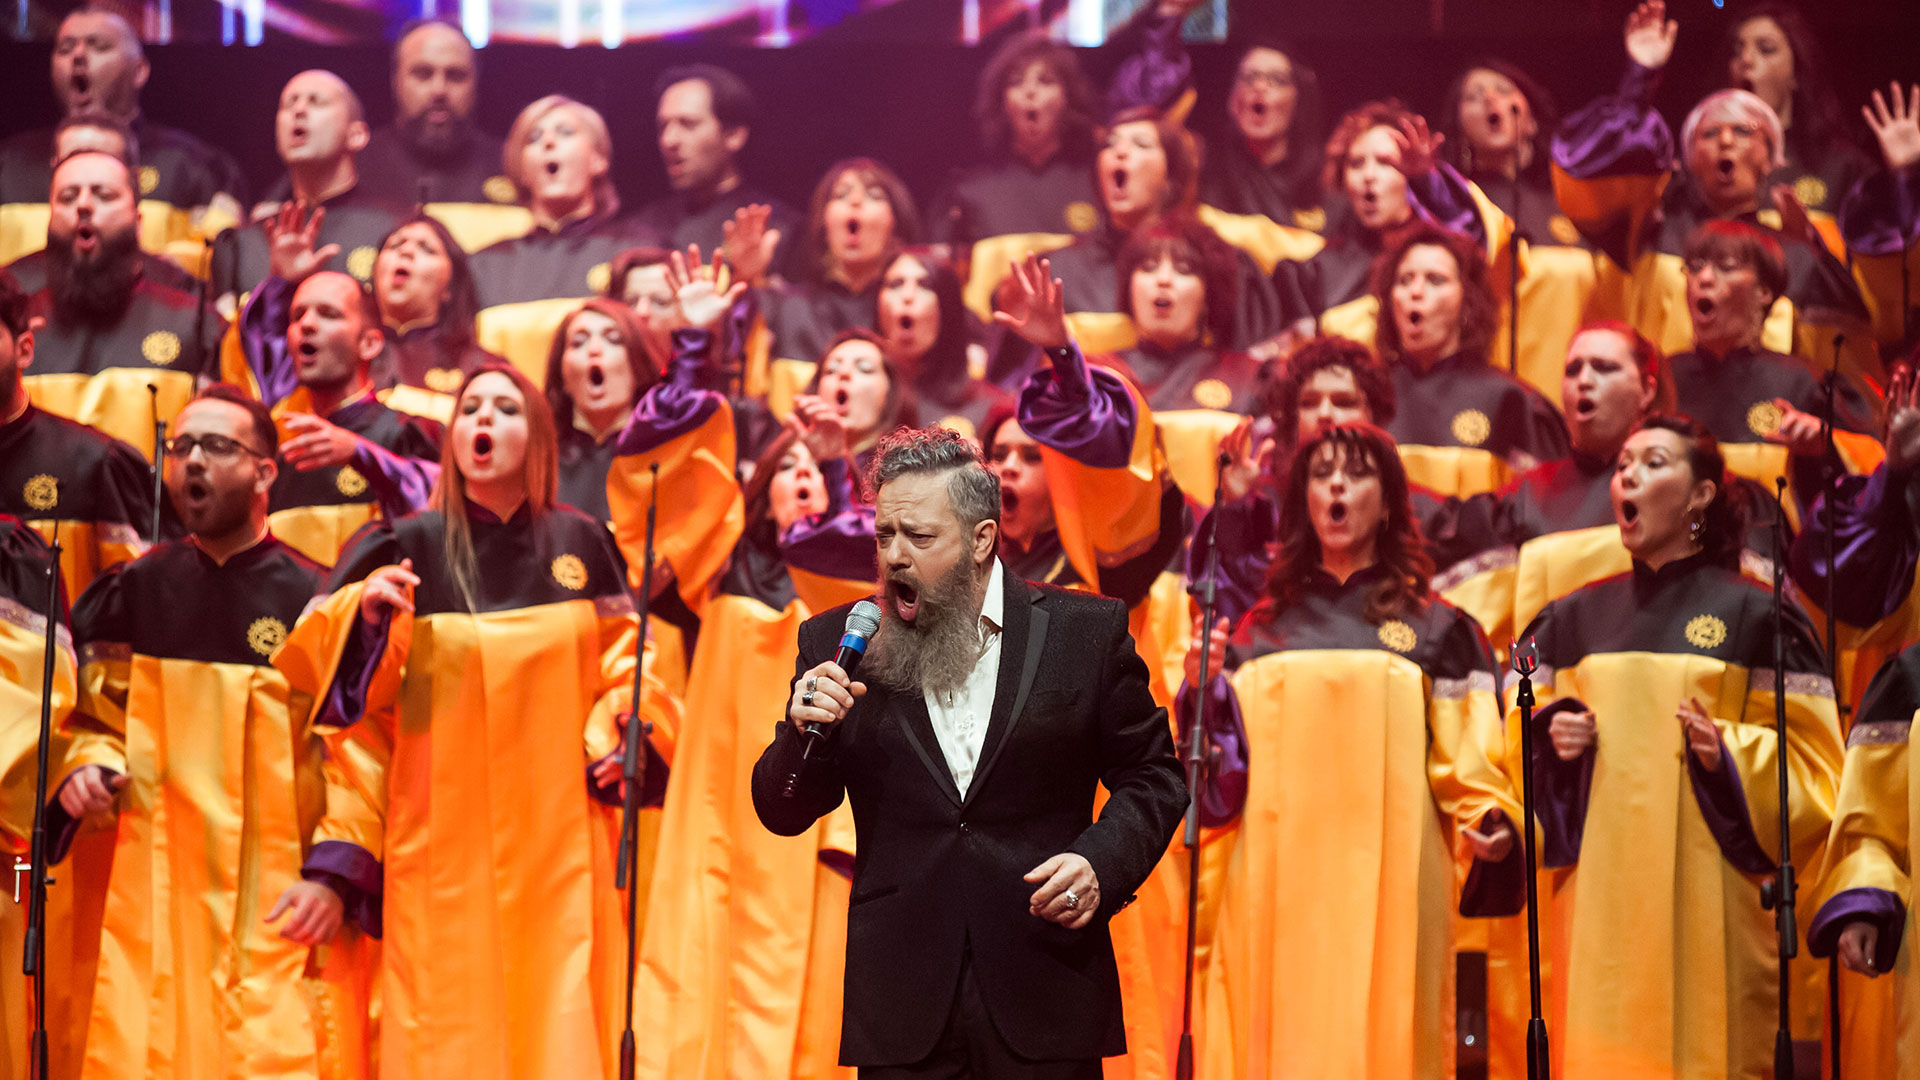 Sunshine_Gospel_Choir_Italia_006.jpg